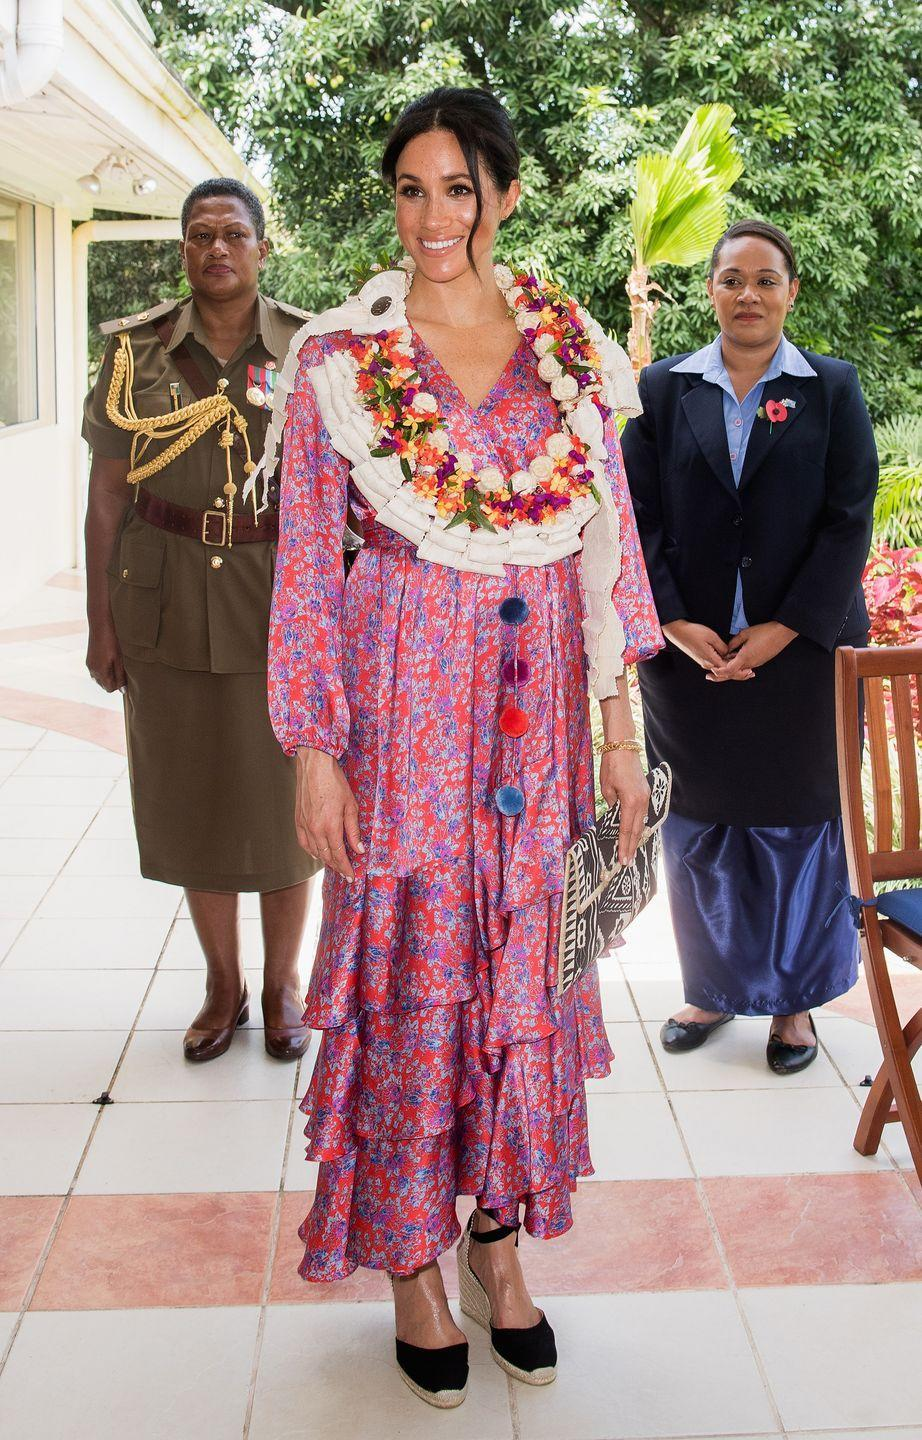 """<p>Meghan stepped out in Fiji <a href=""""https://www.townandcountrymag.com/society/tradition/a24112168/meghan-markle-style-pink-dress-figue-fiji/"""" rel=""""nofollow noopener"""" target=""""_blank"""" data-ylk=""""slk:wearing a printed pink dress"""" class=""""link rapid-noclick-resp"""">wearing a printed pink dress</a> by Figue. The Duchess was given <a href=""""https://www.townandcountrymag.com/society/tradition/g24109428/prince-harry-meghan-markle-fiji-royal-tour-day-2-photos/"""" rel=""""nofollow noopener"""" target=""""_blank"""" data-ylk=""""slk:a floral garland"""" class=""""link rapid-noclick-resp"""">a floral garland</a> during the visit. </p>"""